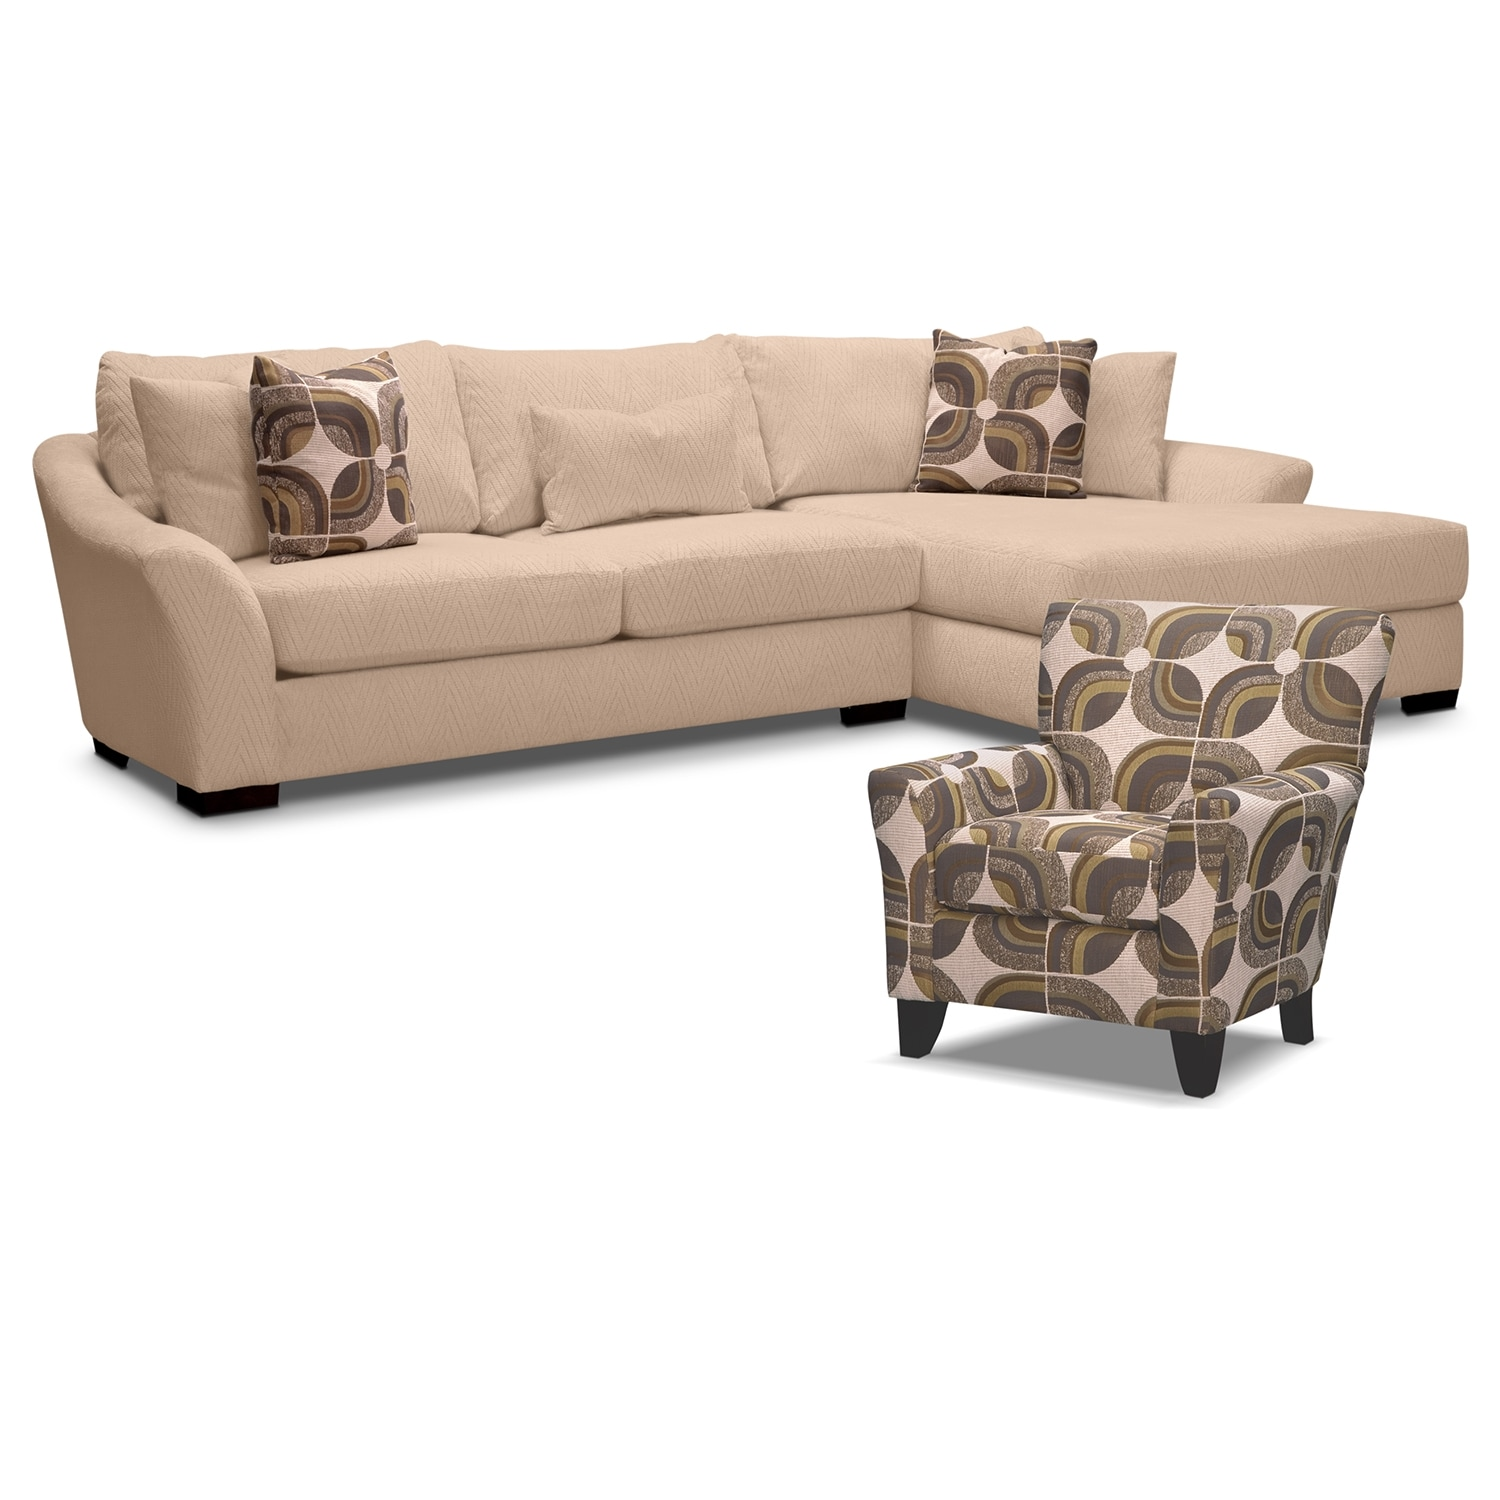 Living Room Furniture - Oasis II 2 Pc. Sectional (Reverse) and Accent Chair